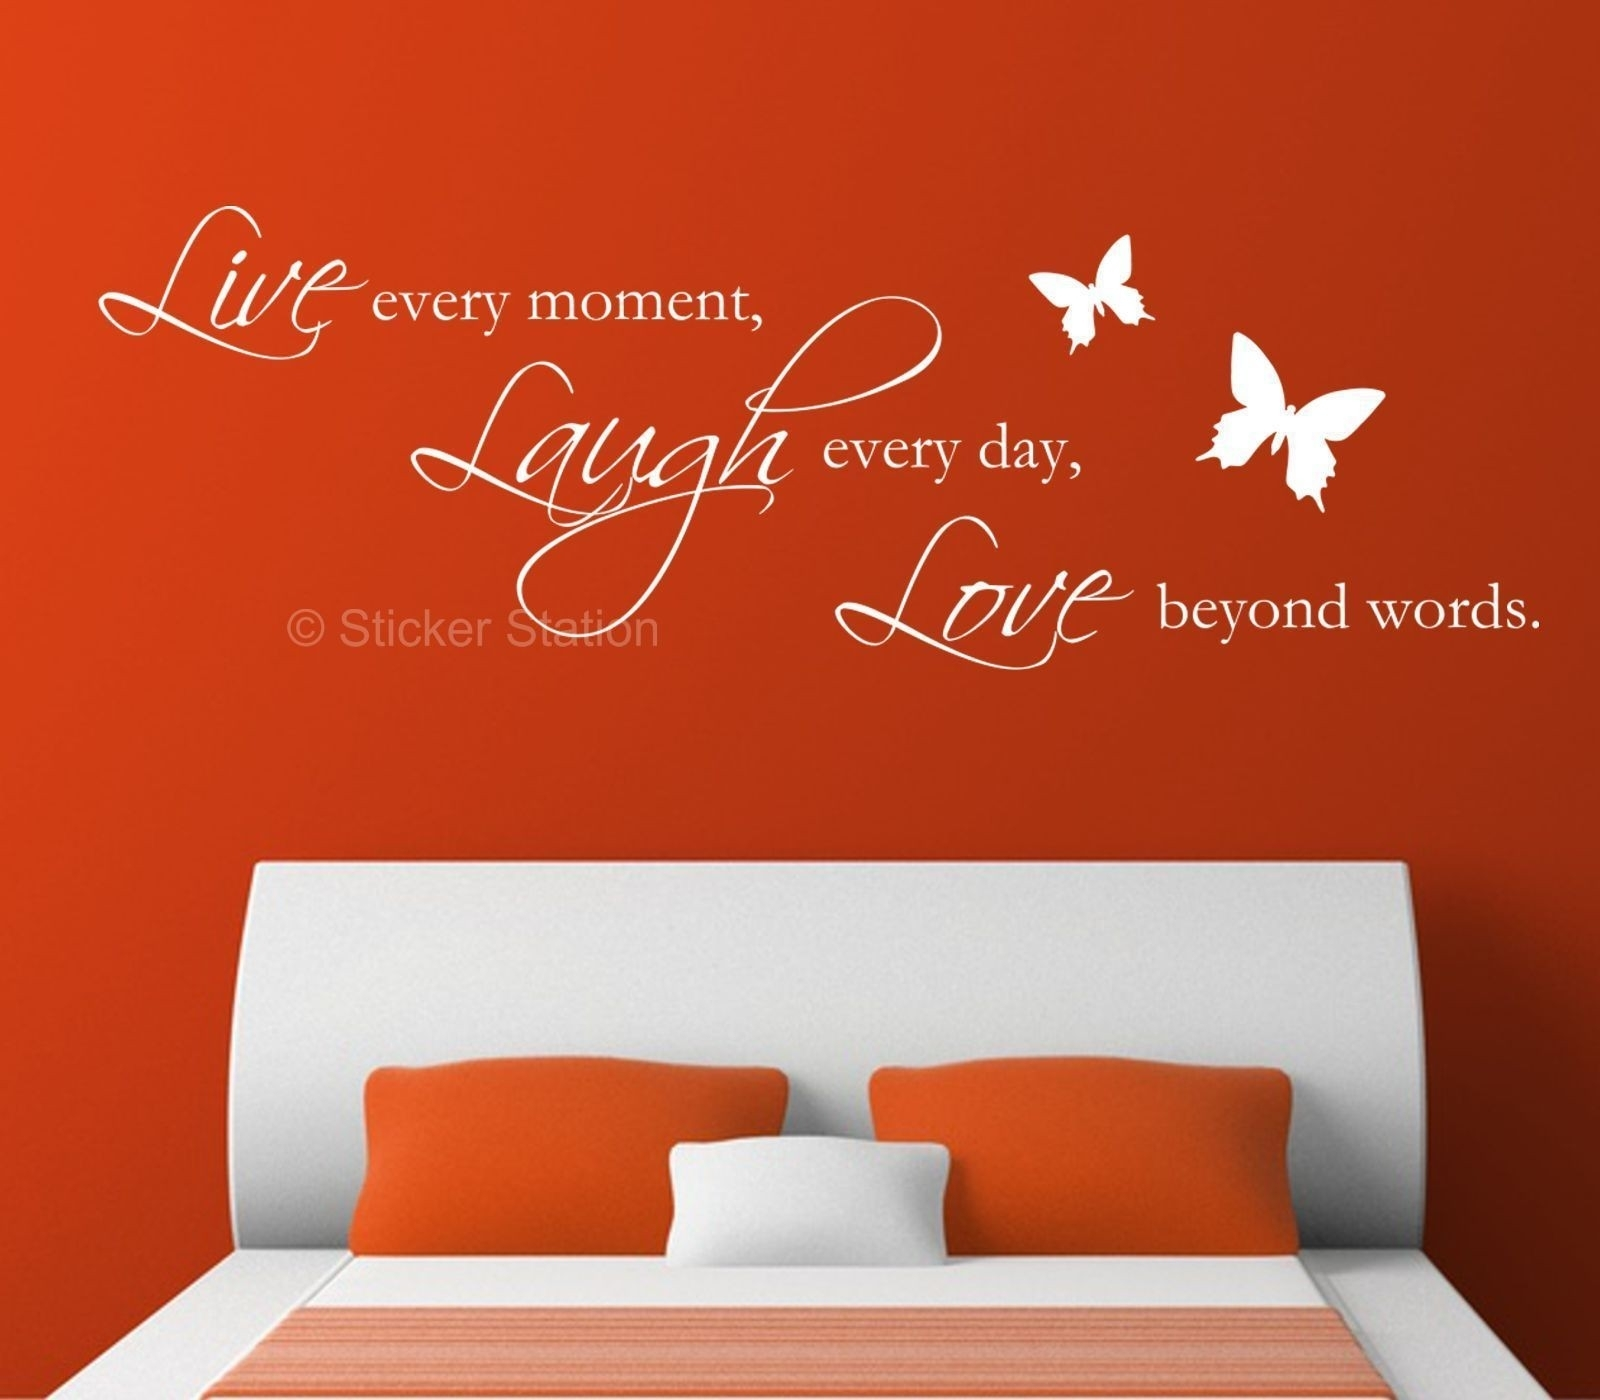 Live Laugh Love Quote & Butterflies Wall Art Sticker - Sticker Station pertaining to Most Up-to-Date Live Laugh Love Wall Art